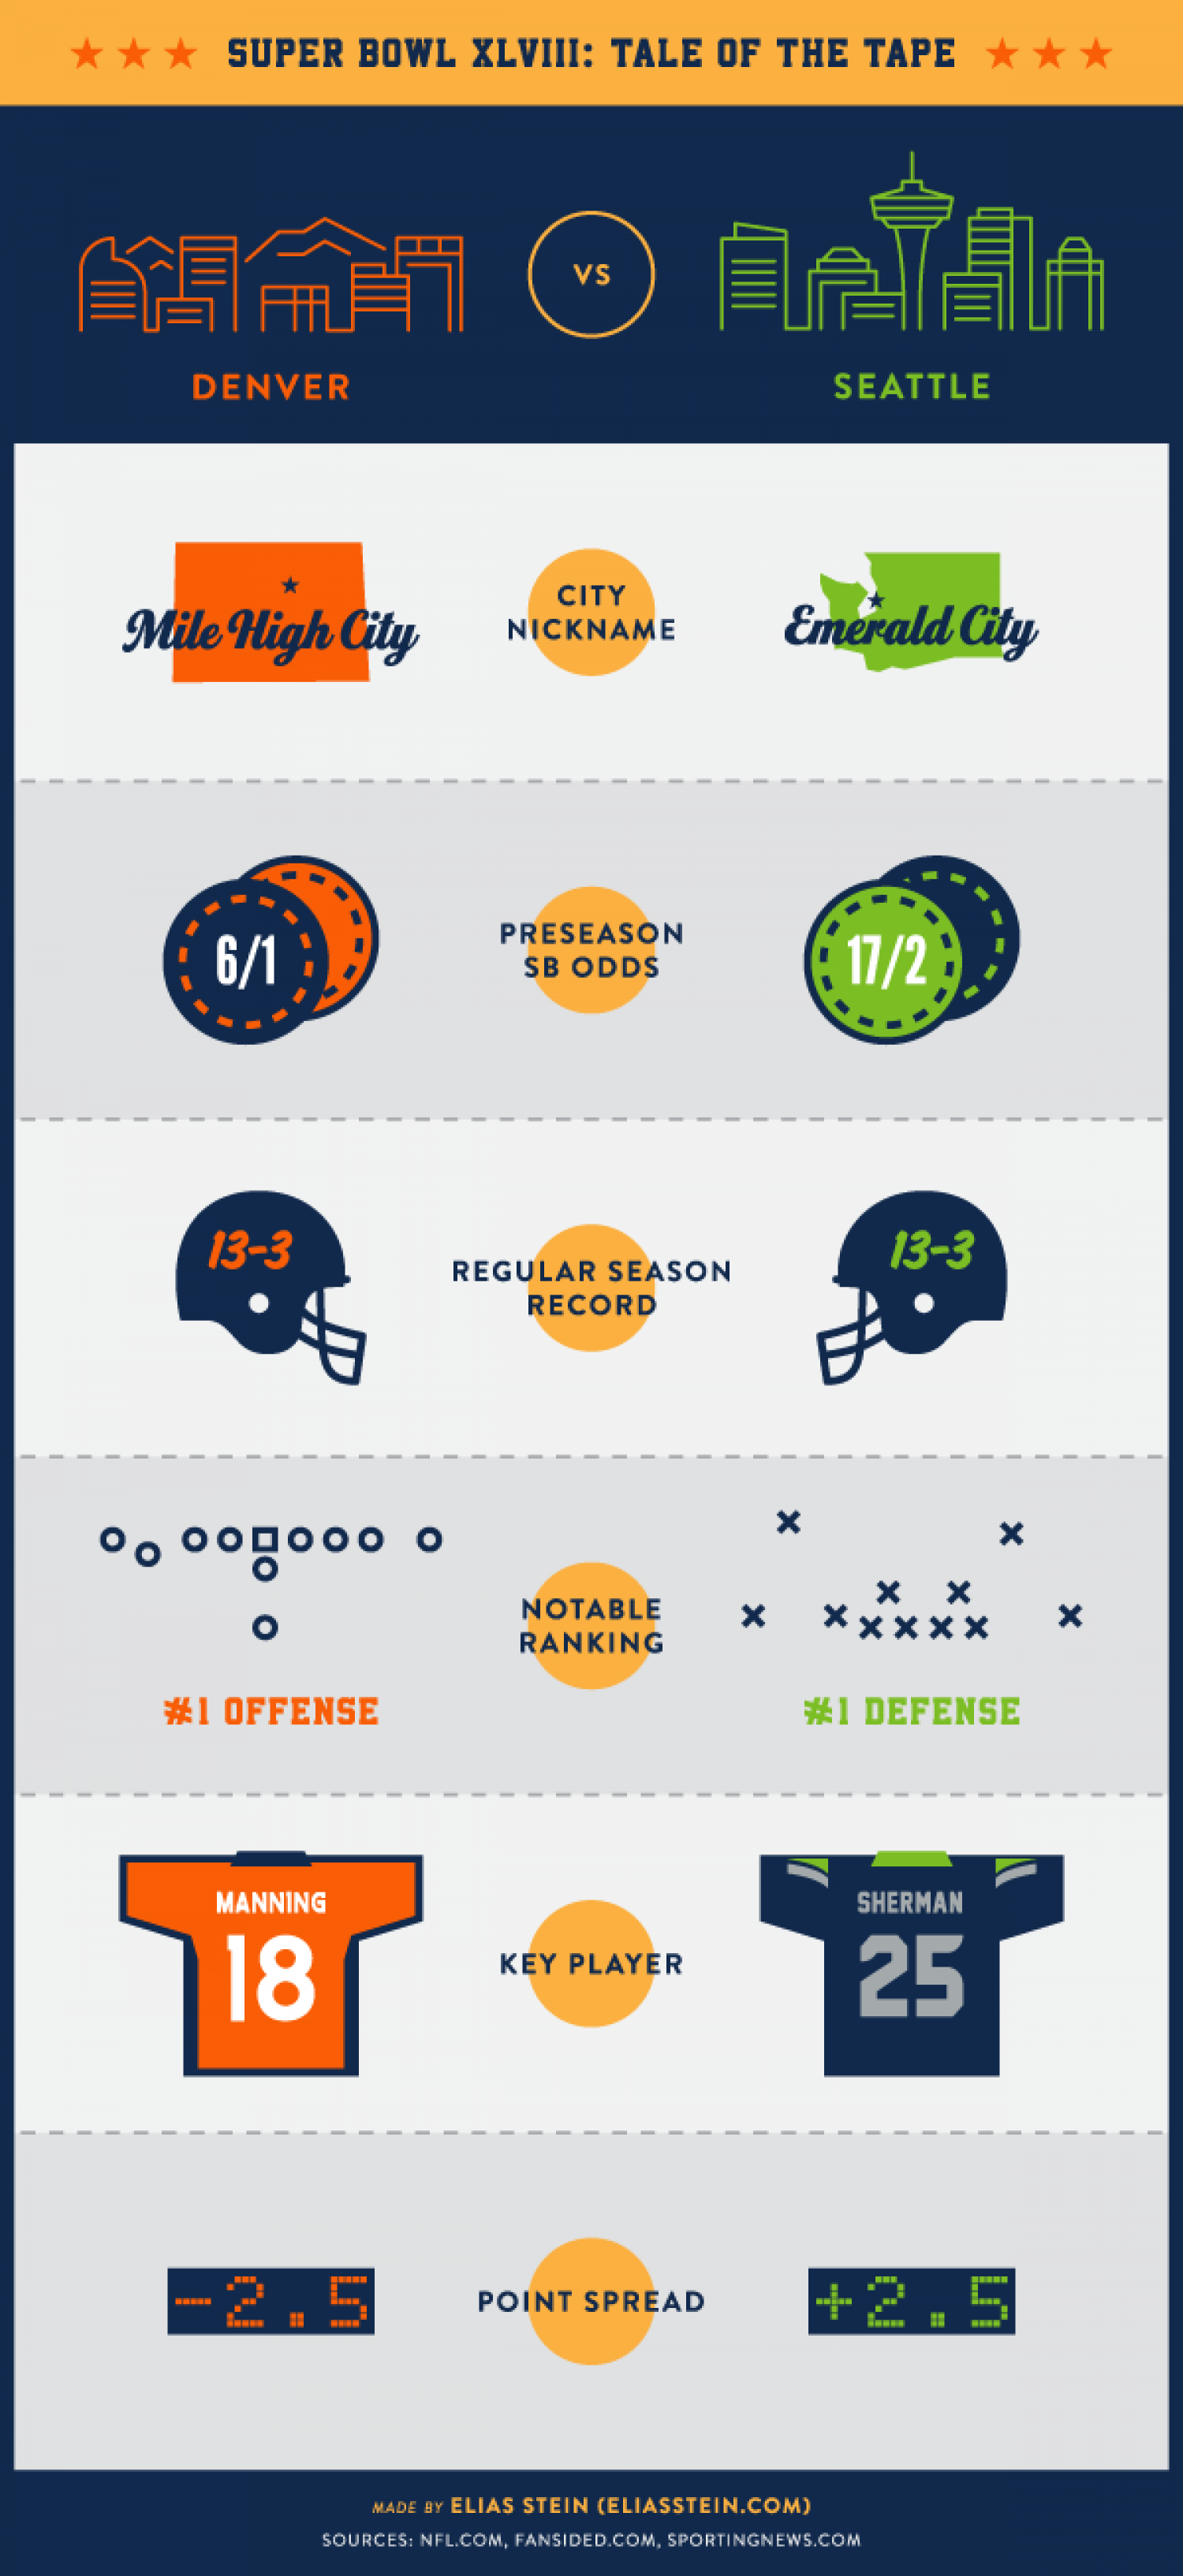 Super Bowl Tale of the Tape Infographic